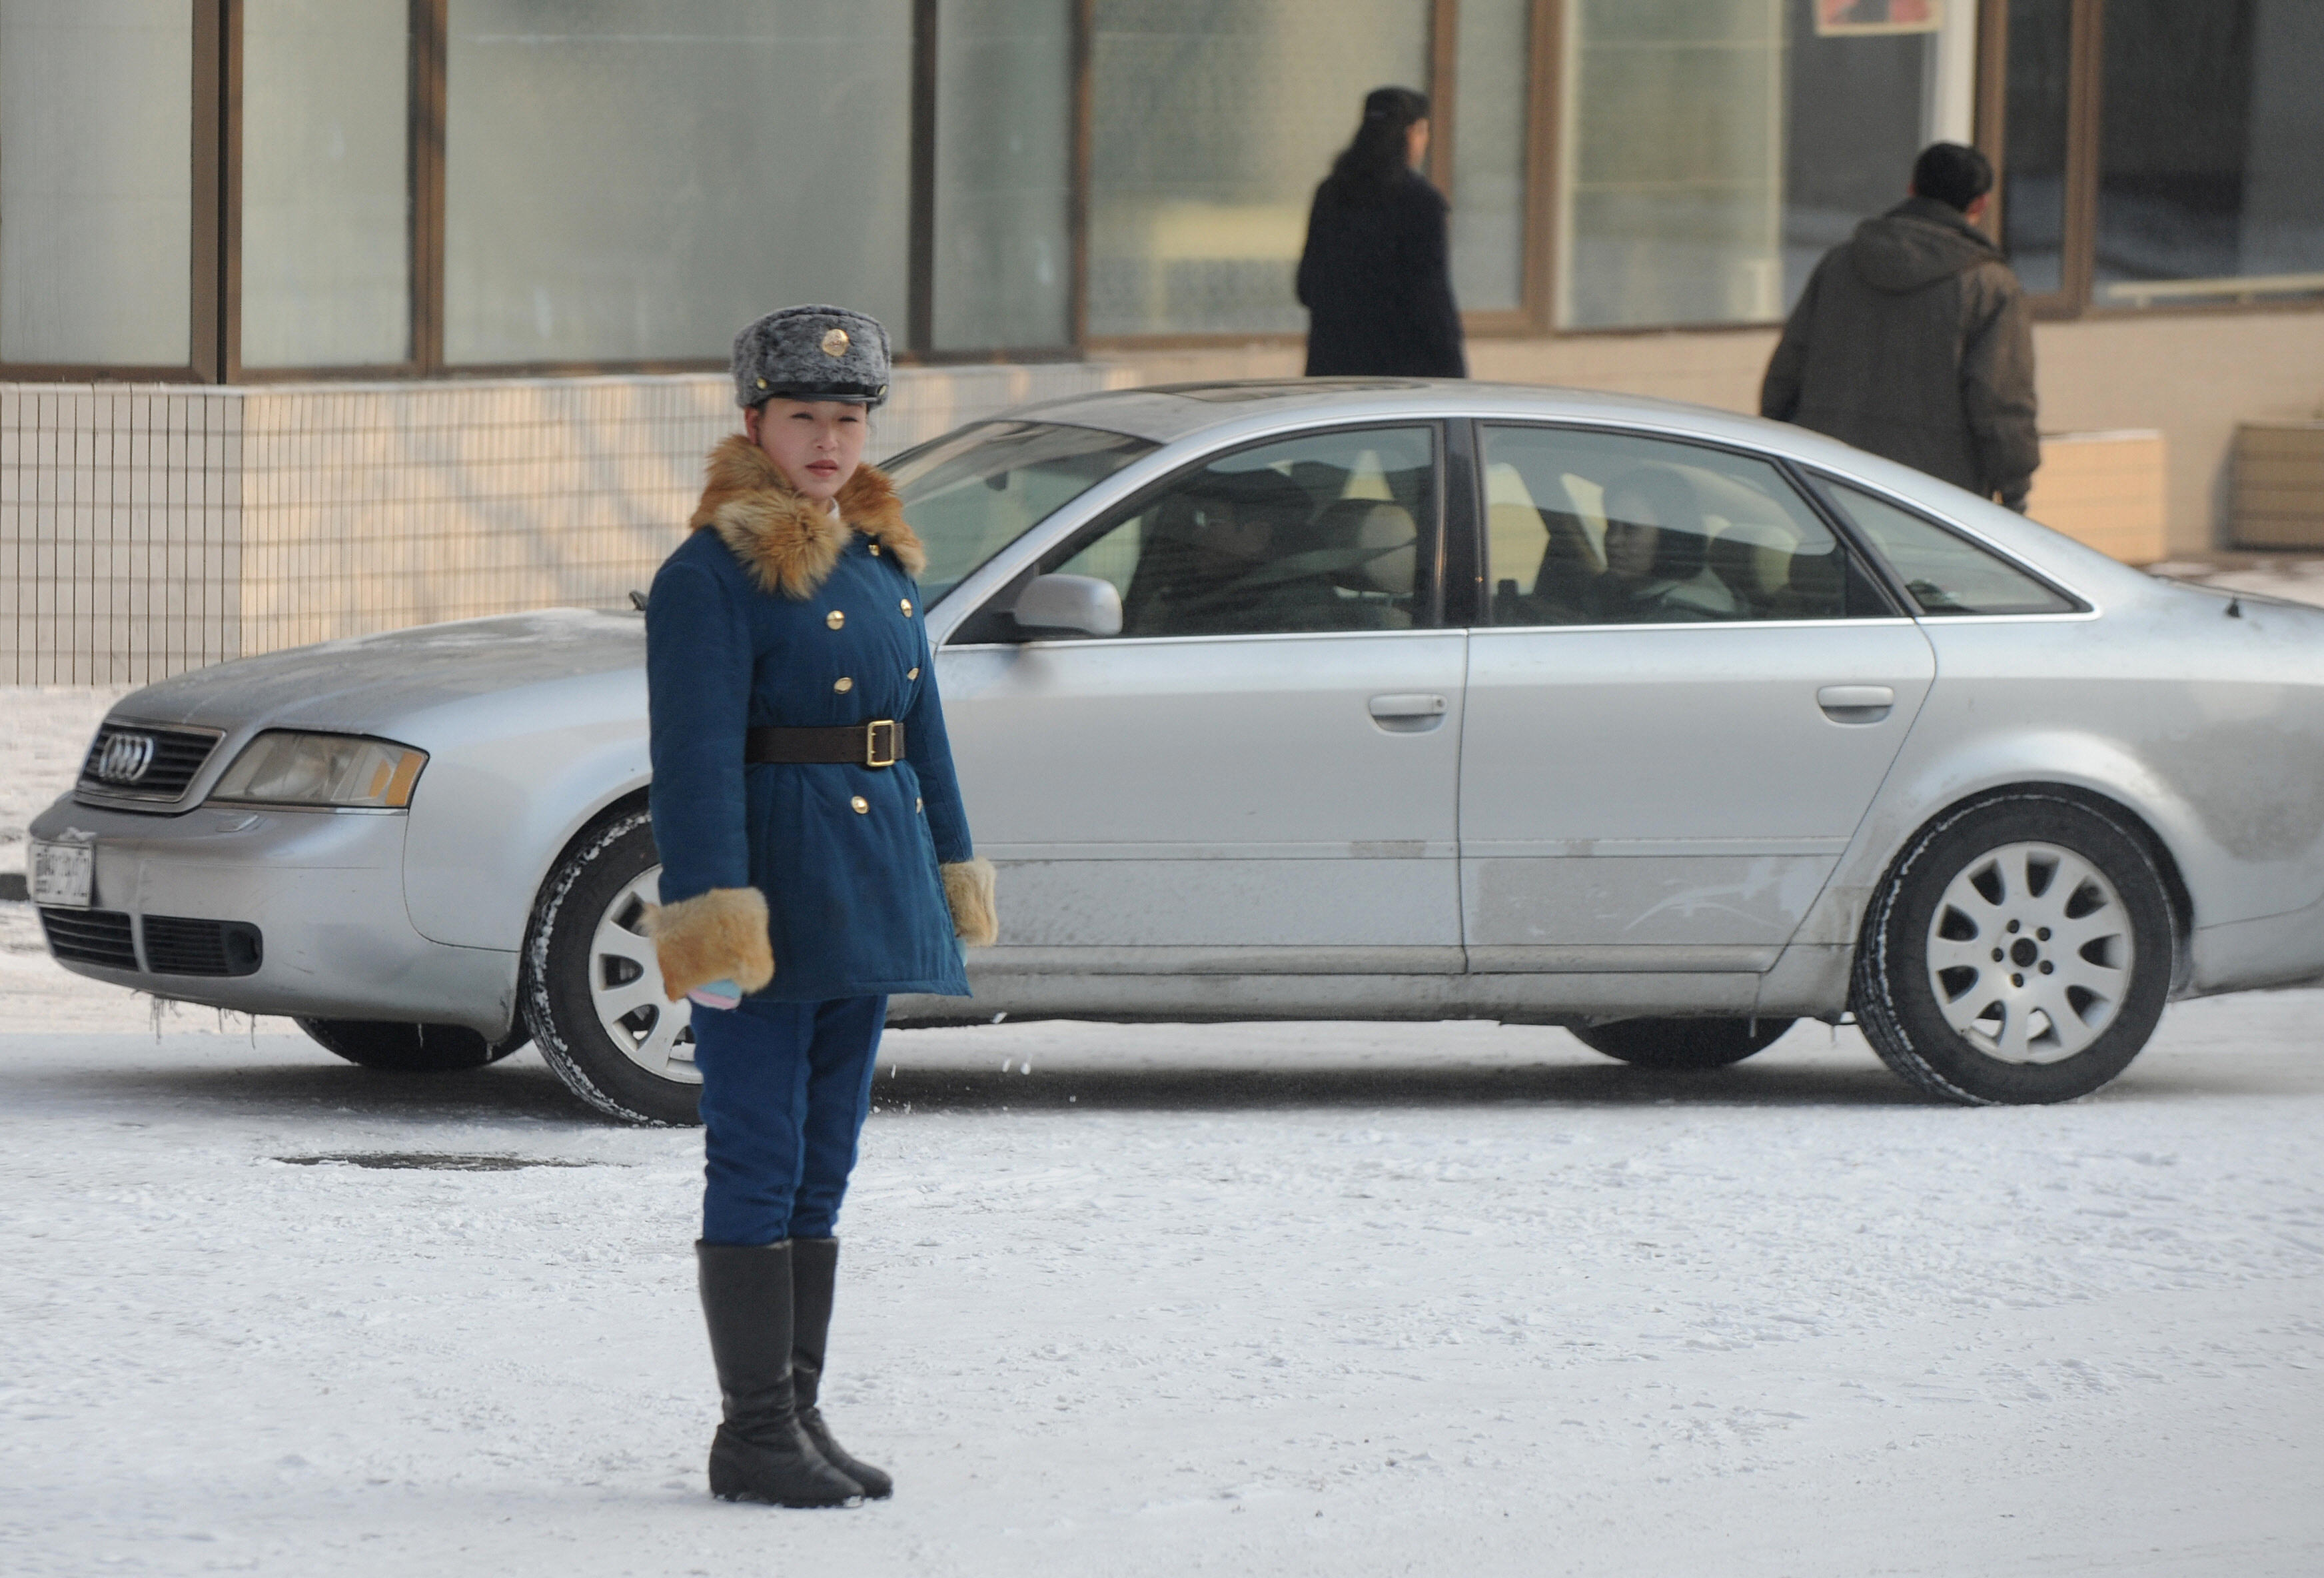 A North Korean traffic policewoman, dire